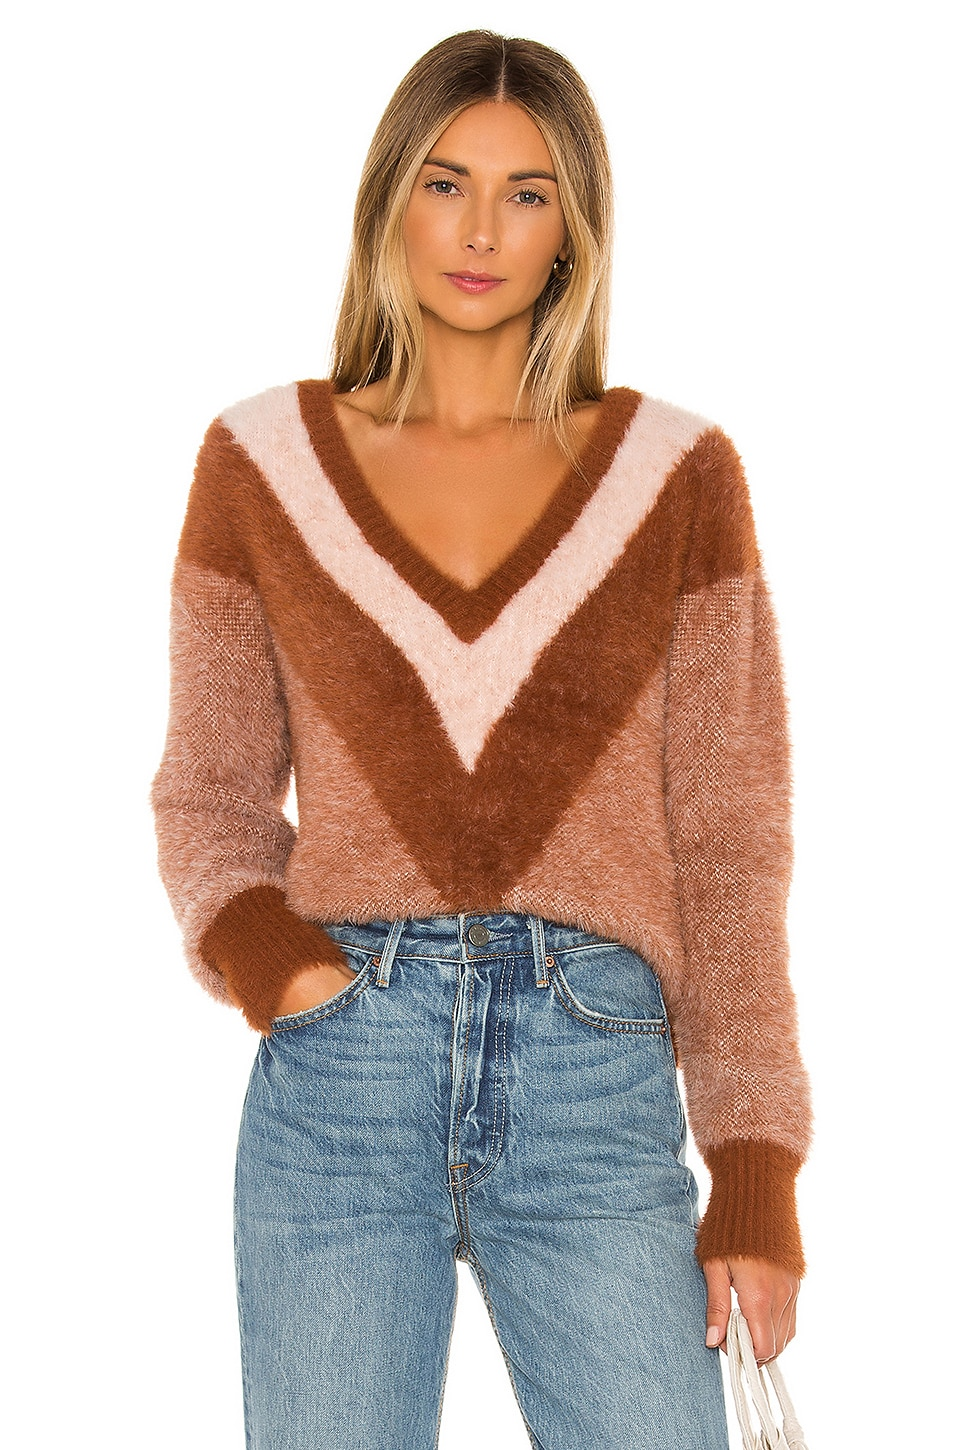 House of Harlow 1960 x REVOLVE Robbie Sweater in Sand